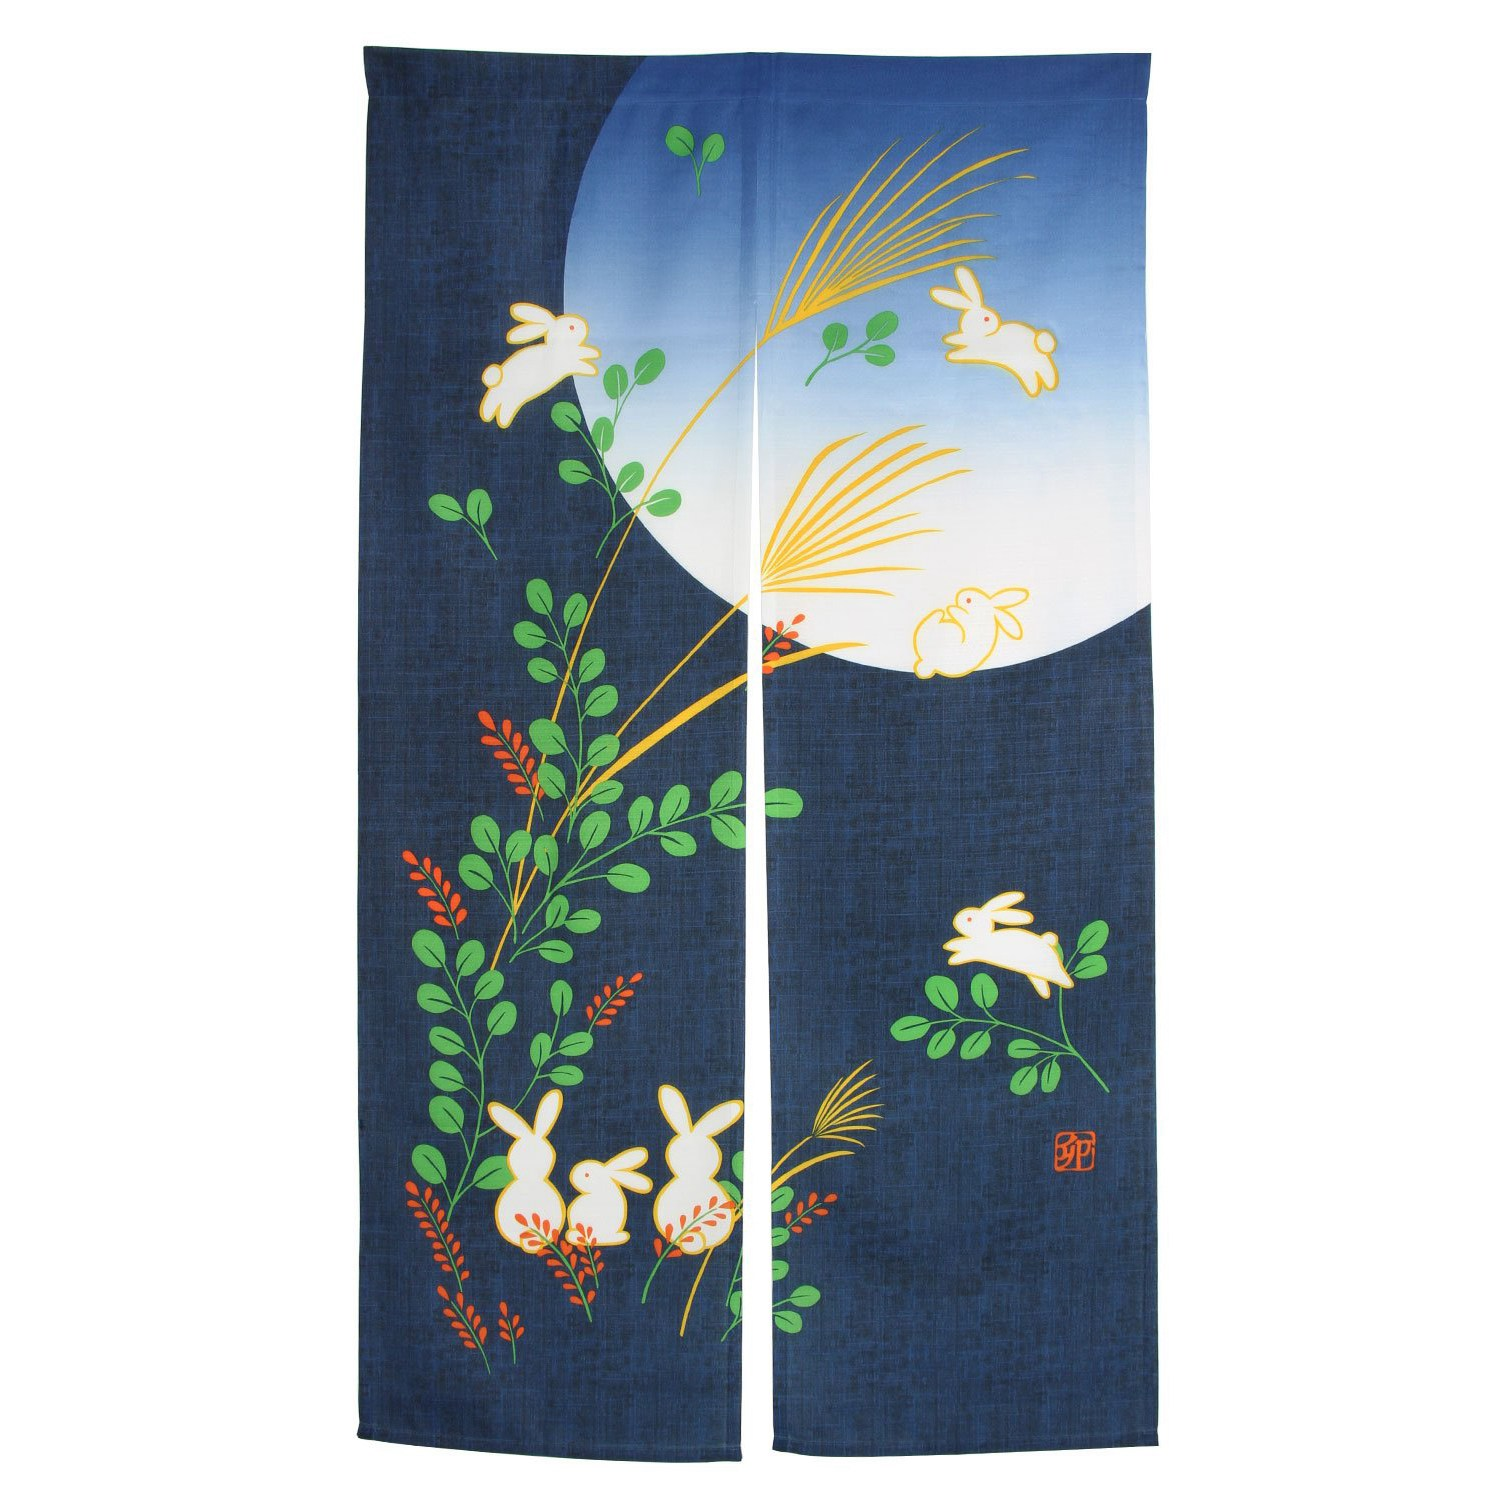 BMBY-Japanese Doorway Curtain Noren Rabbit Under Moon For Home Decoration 85X150Cm